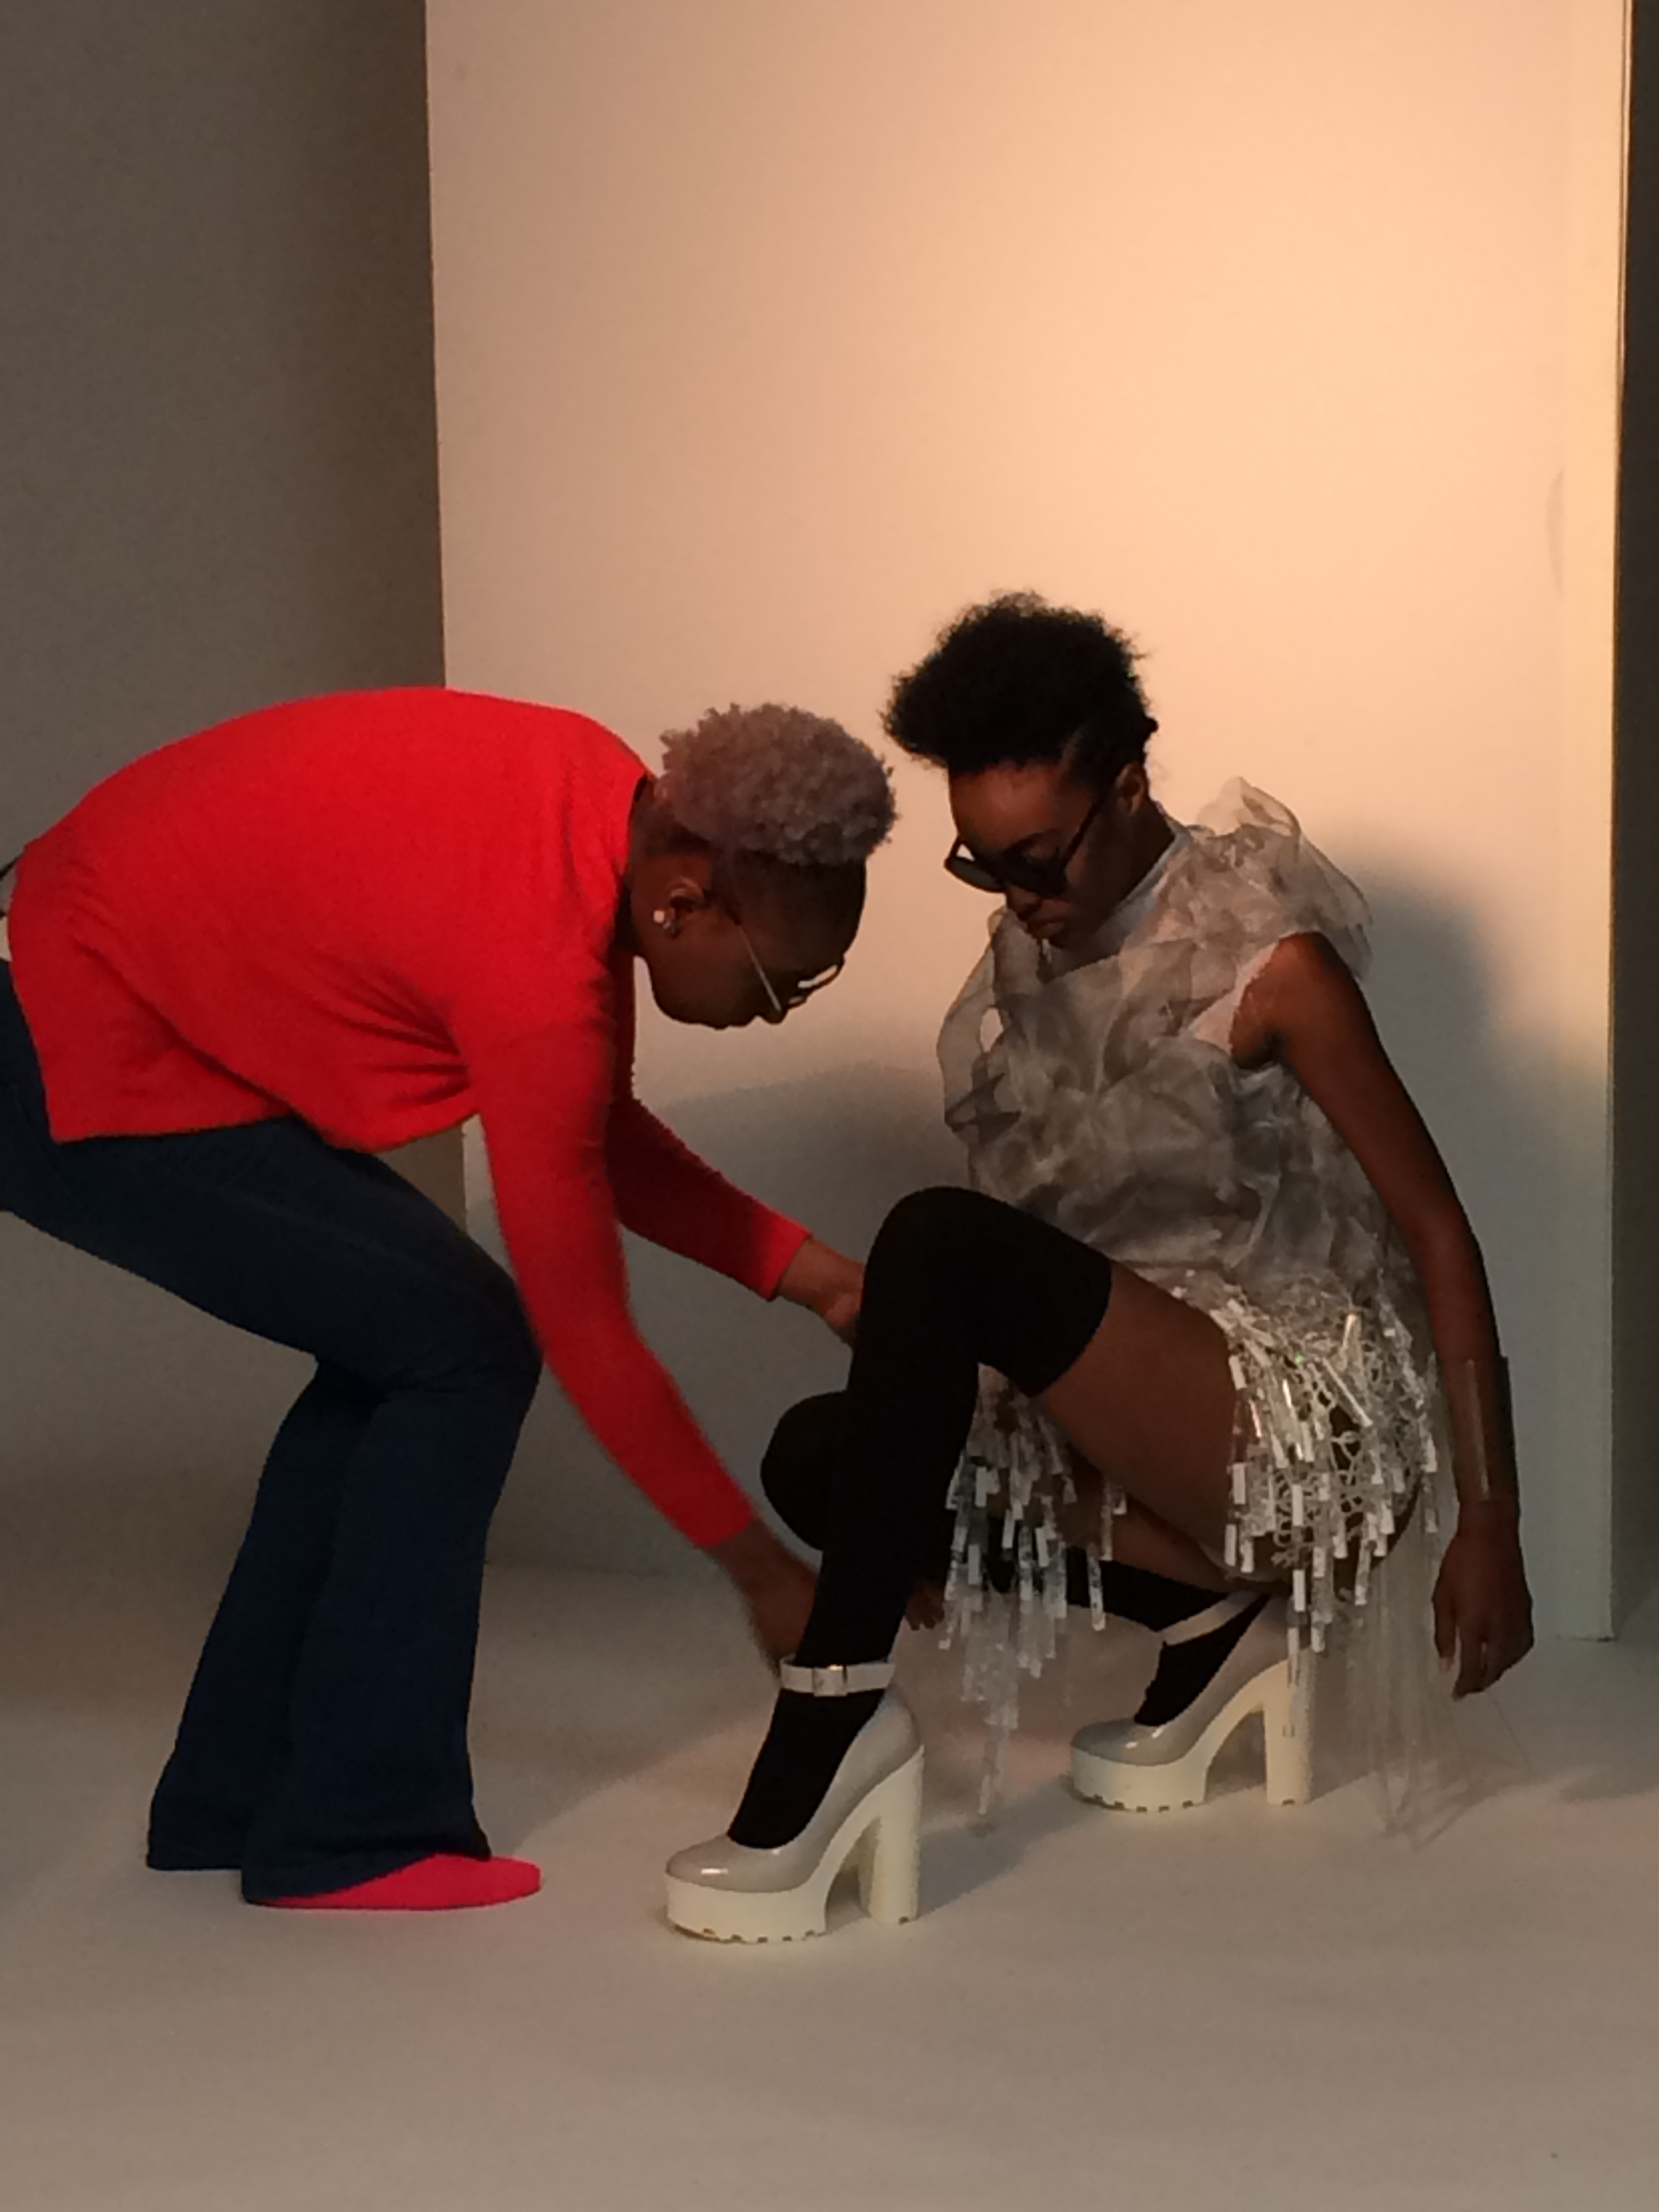 A student styling a model during the photo shoot. Photo courtesy of Bethany Meuleners.